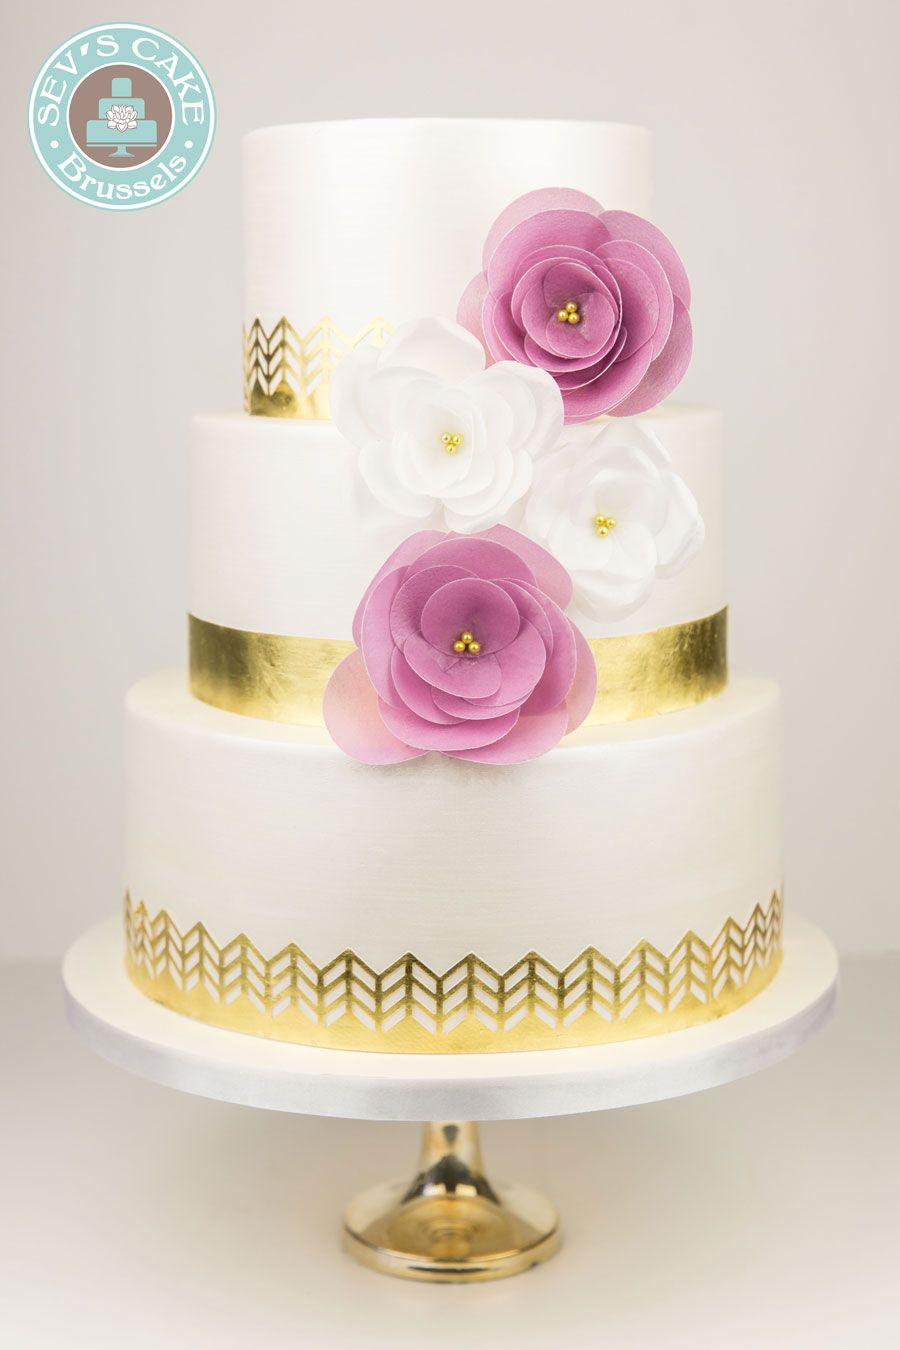 GOLD WEDDING CAKE WITH PAPER FLOWER - GATEAU DE MARIAGE OR AVEC ...